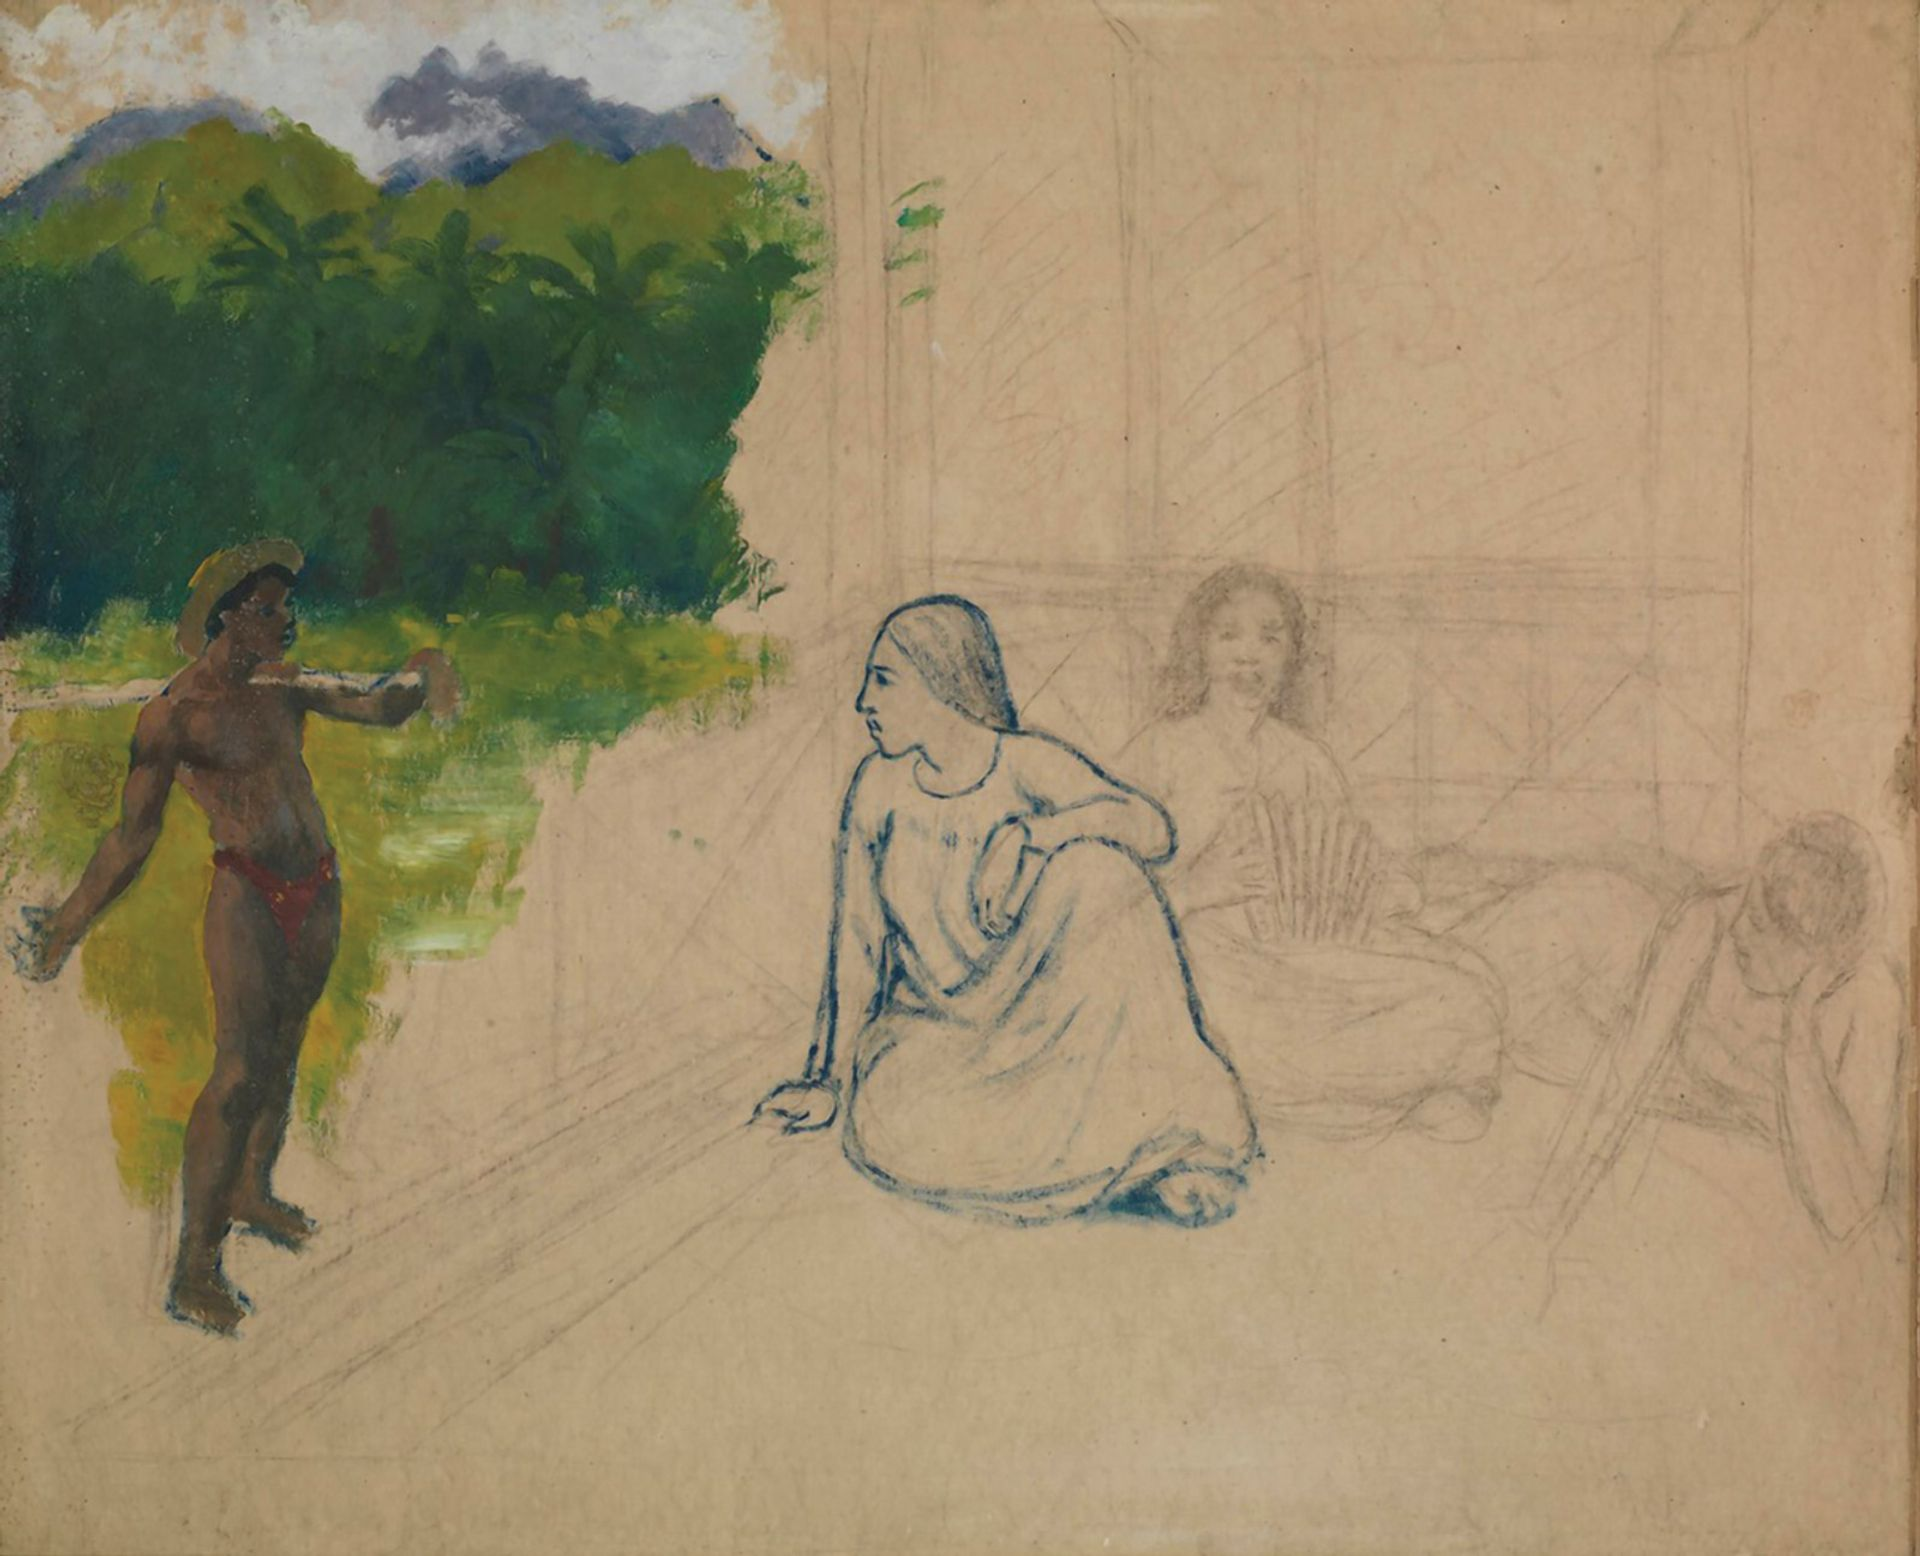 The Tate's supposed Gauguin, Tahitians (which the gallery dates at around 1891) depicts a young man painted in oils, a woman in blue crayon and two further women sketched in charcoal. Courtesy of Tate